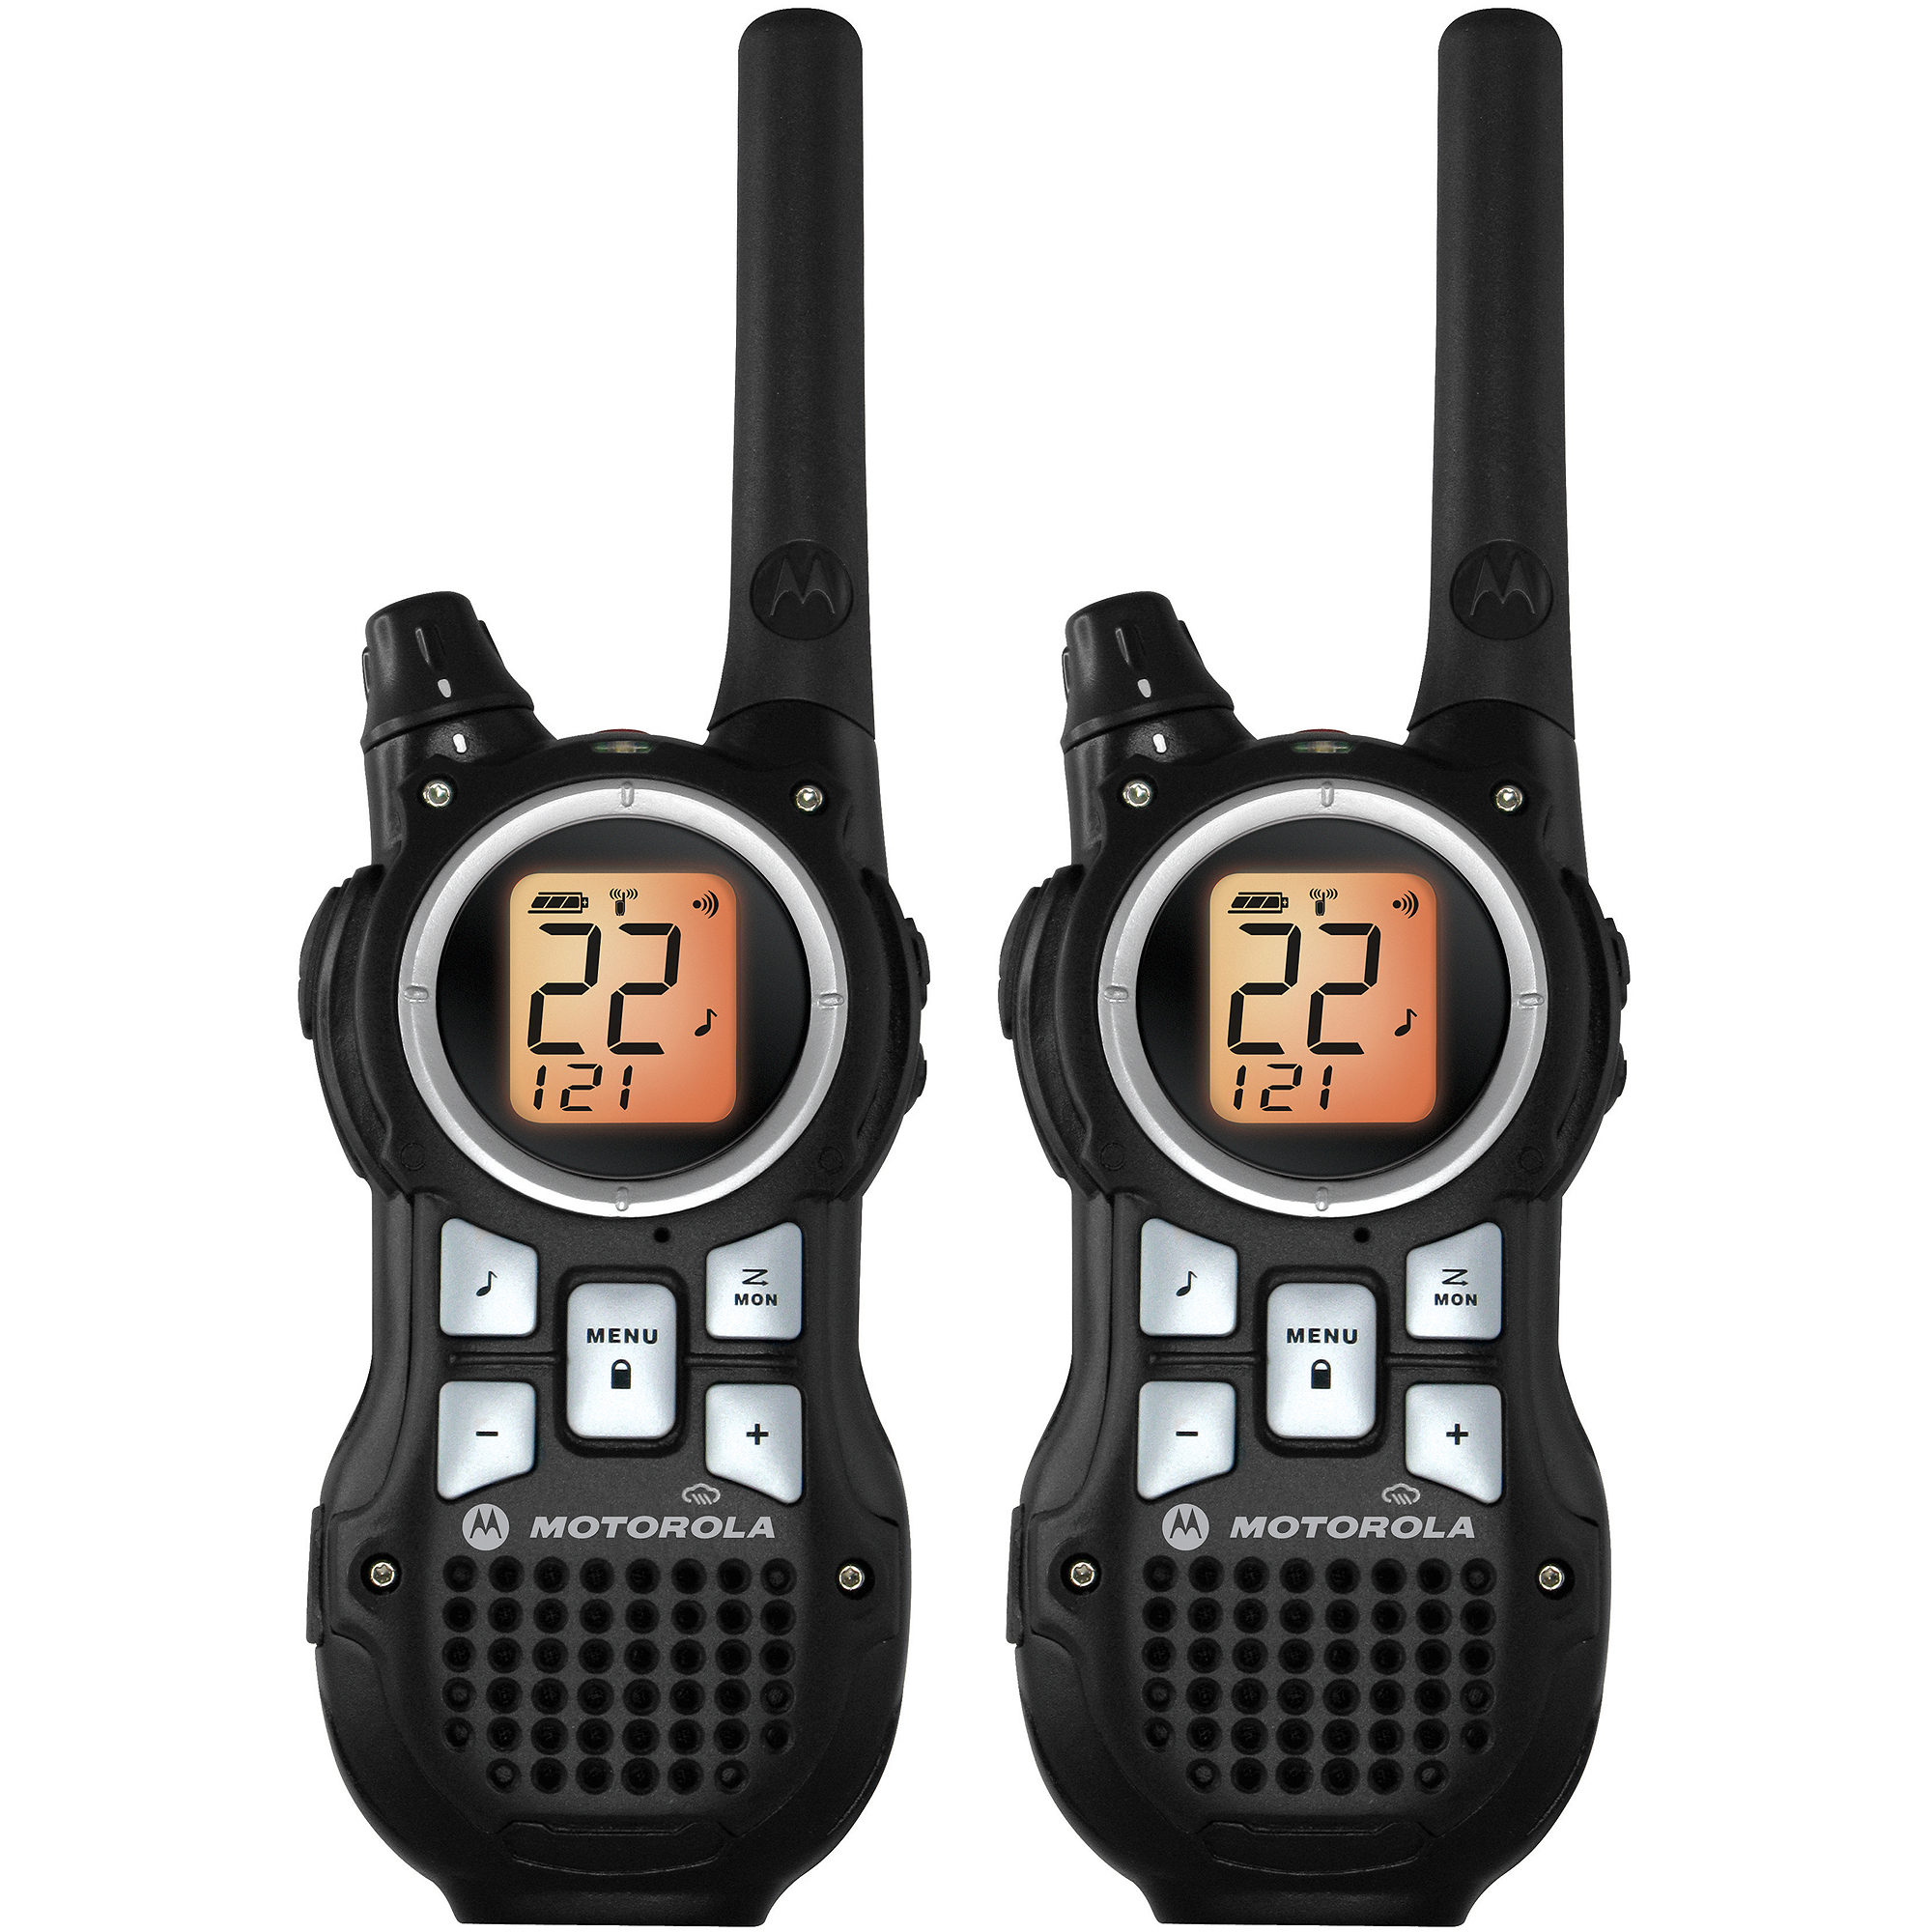 Motorola MR350R - 35 Mile Range Talkabout 2-Way Radios, PAIR